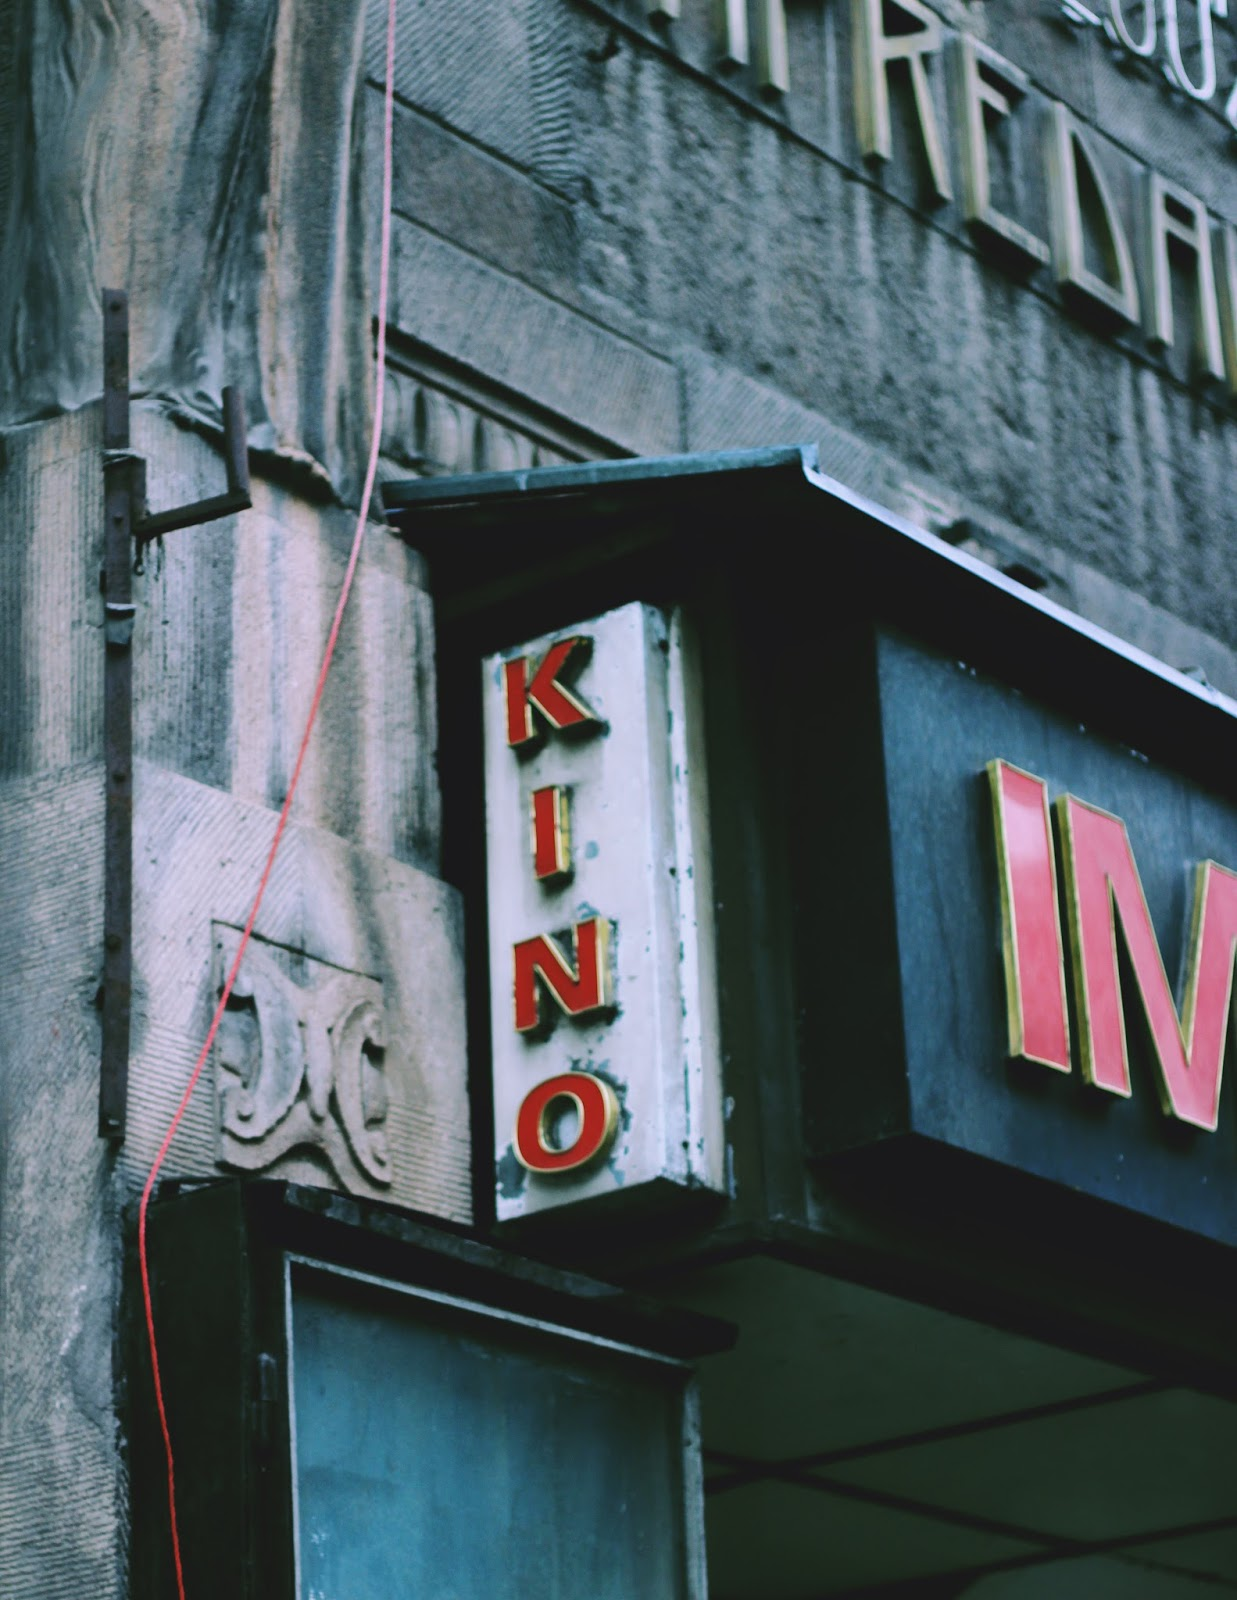 filipa canic blog, youarethepoet, you are the poet blog, sarajevo, kino,